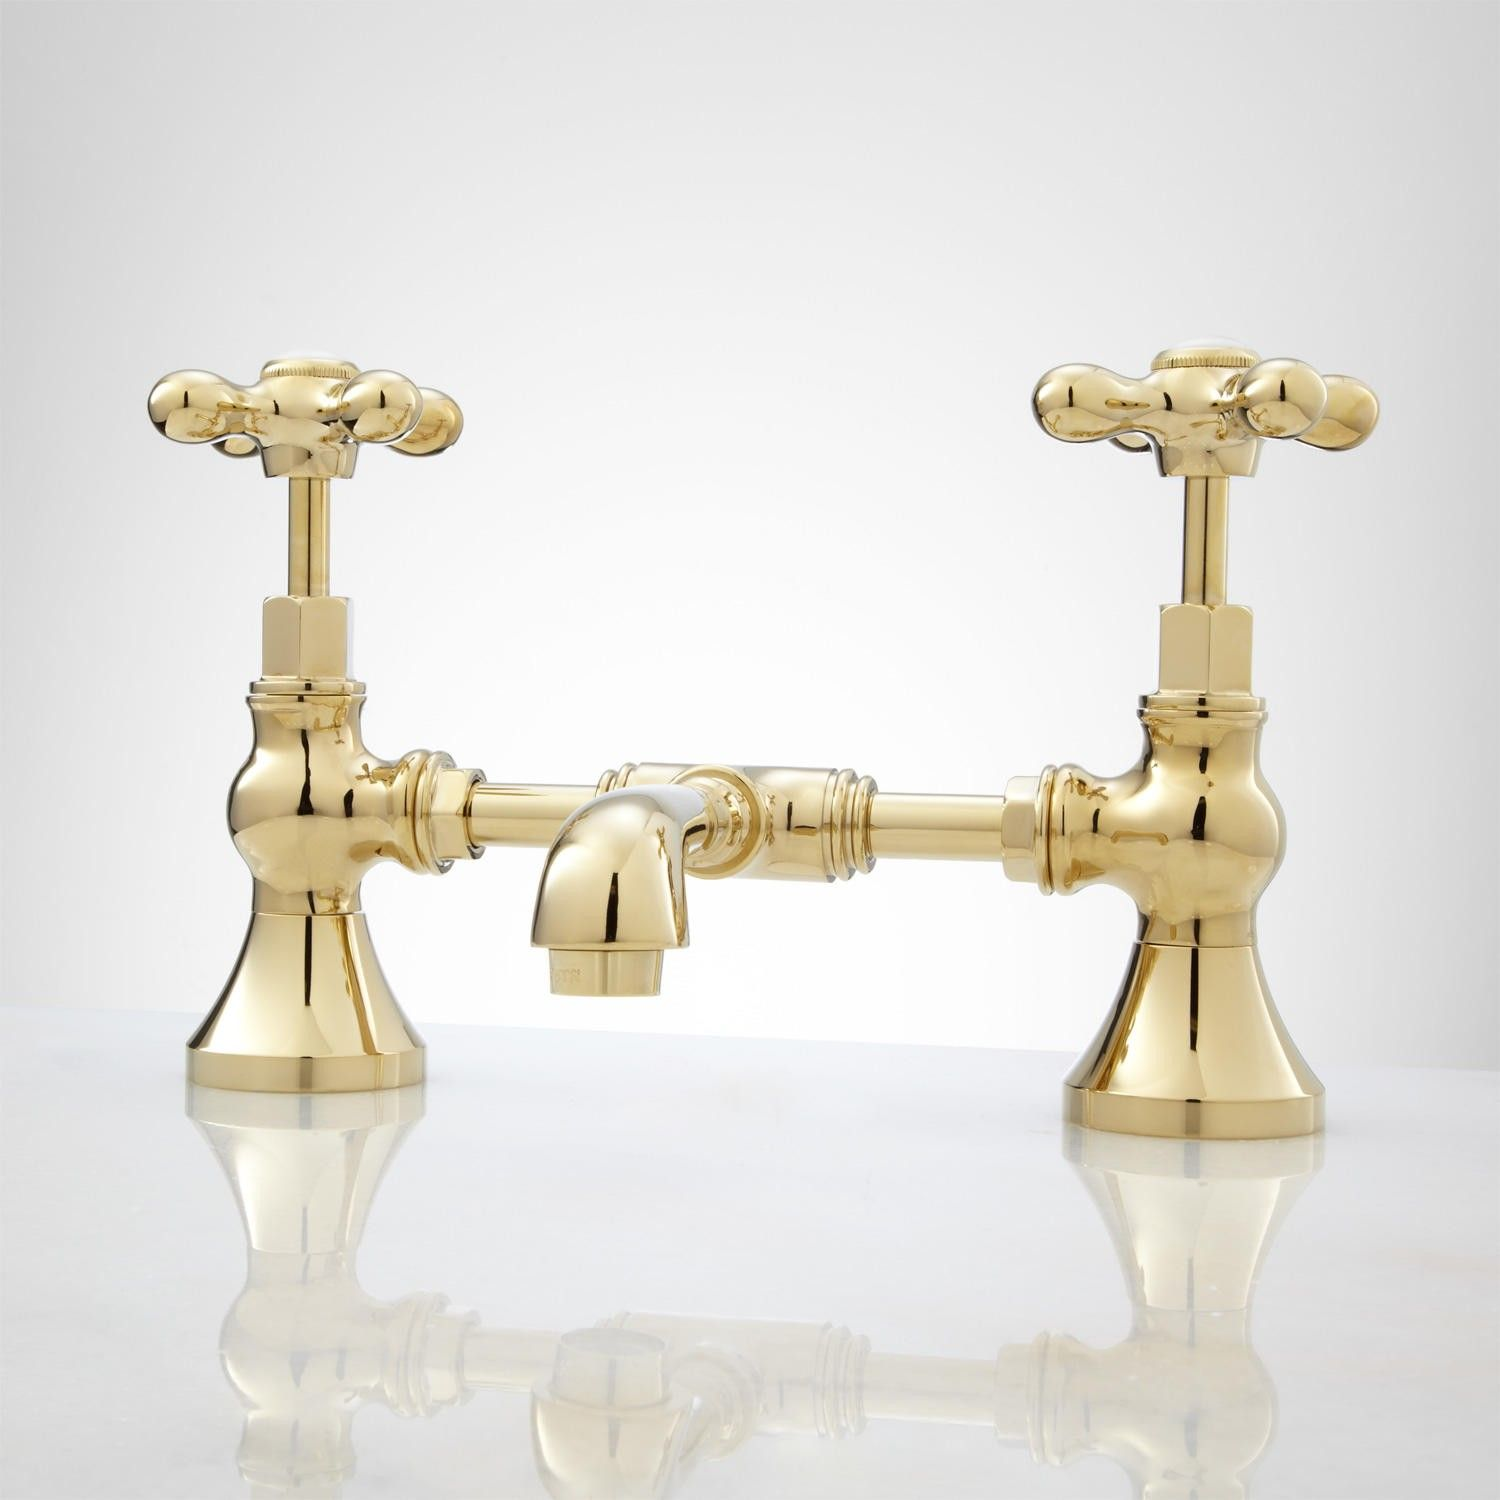 Attractive Monroe Bridge Bathroom Faucet   Cross Handles